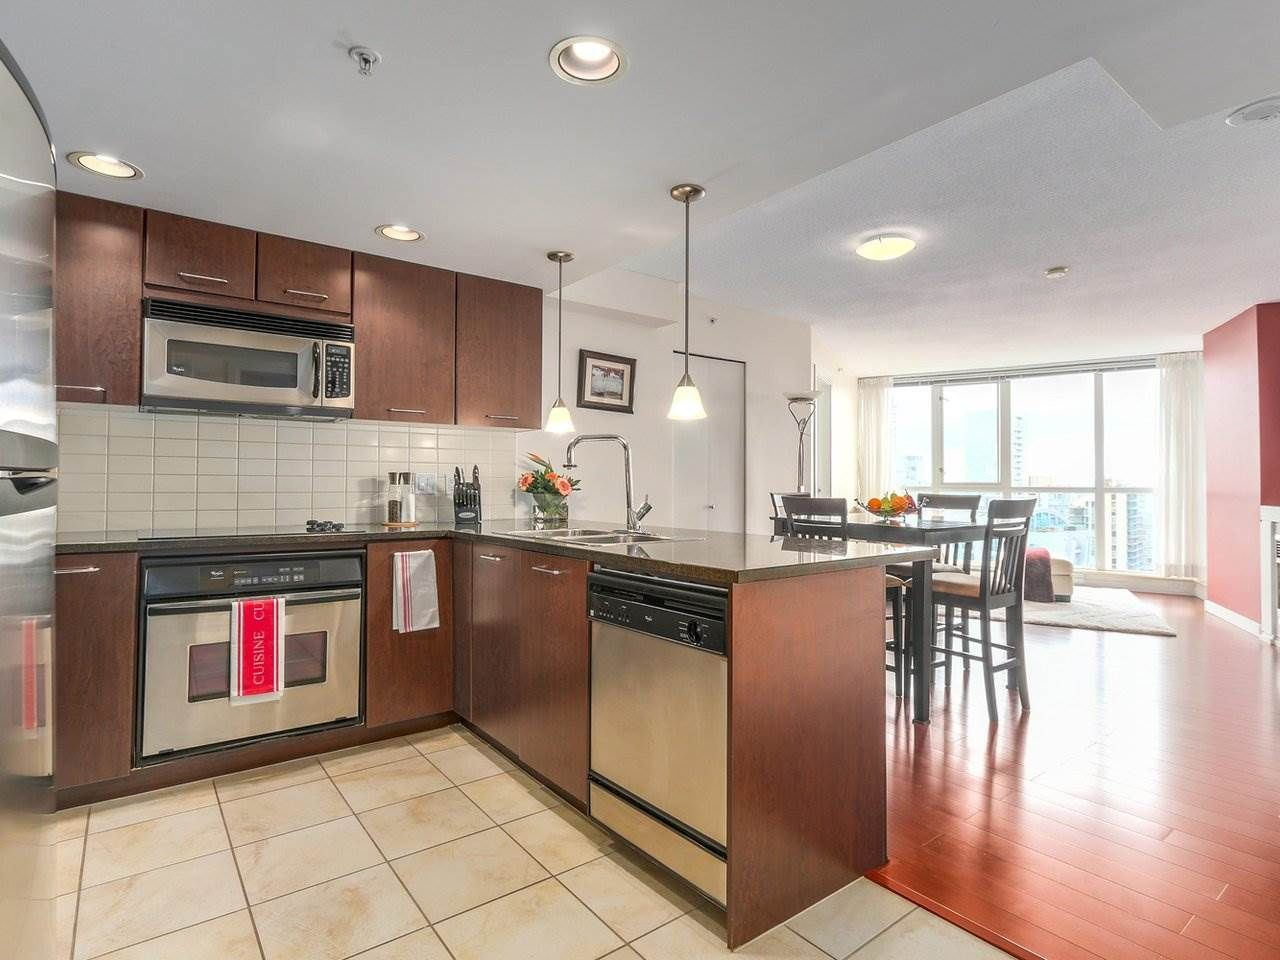 """Main Photo: 3107 1199 SEYMOUR Street in Vancouver: Downtown VW Condo for sale in """"THE BRAVA"""" (Vancouver West)  : MLS®# R2305420"""